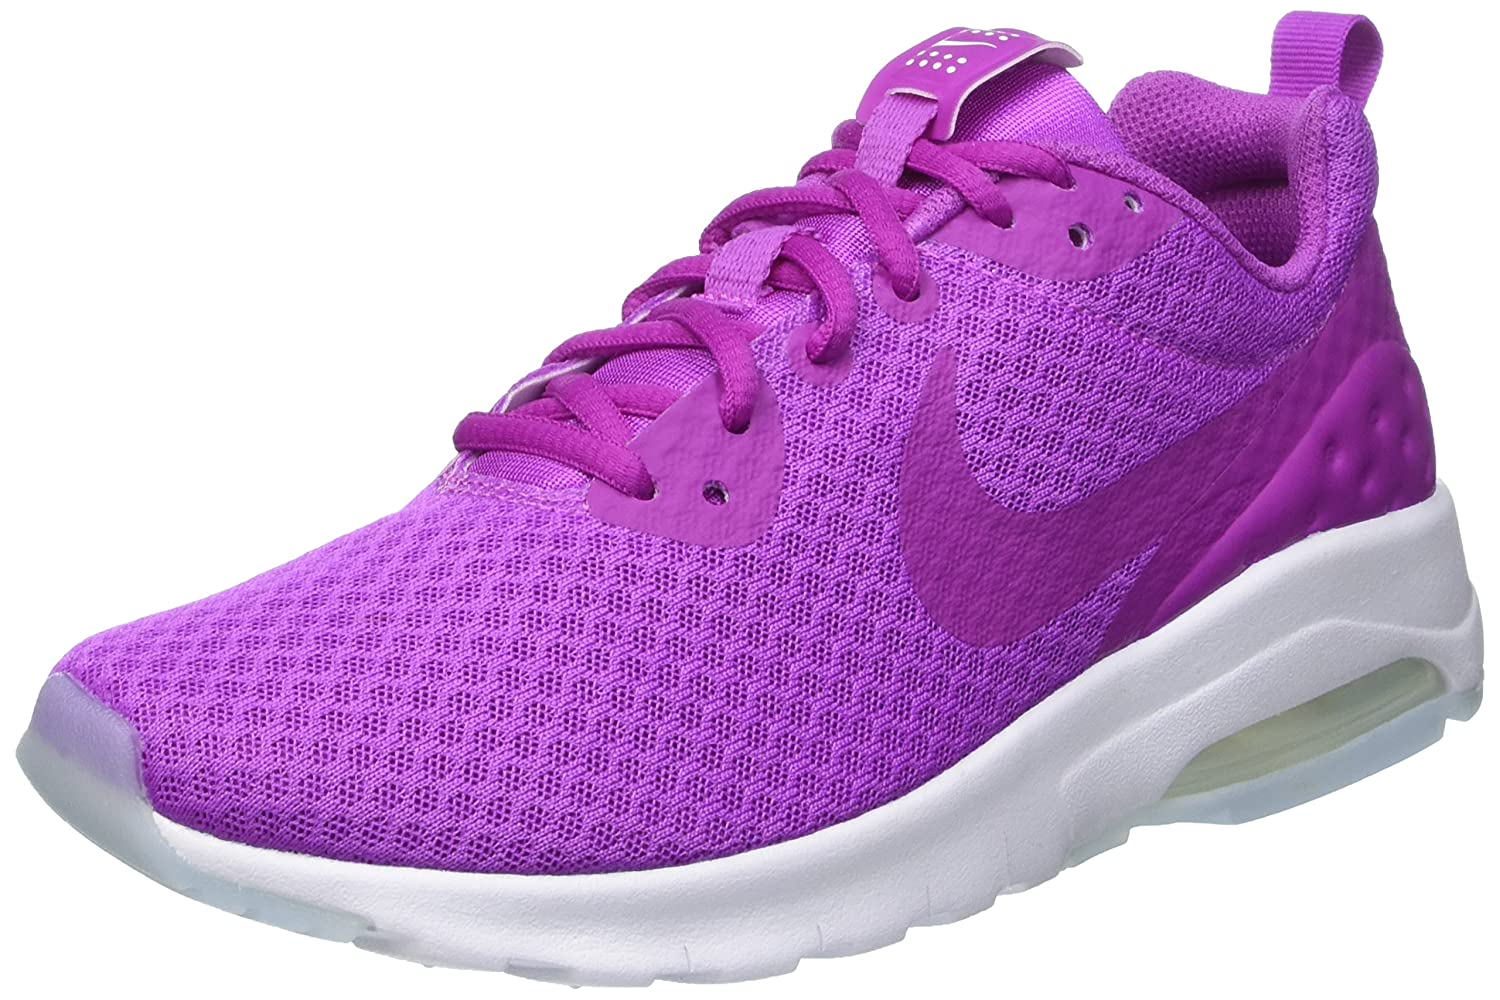 NIKE Women's Air Max Motion Lw Running Shoe B0145Y7IHY 11.5 B(M) US|Hyper Violet/Hyper Violet/White